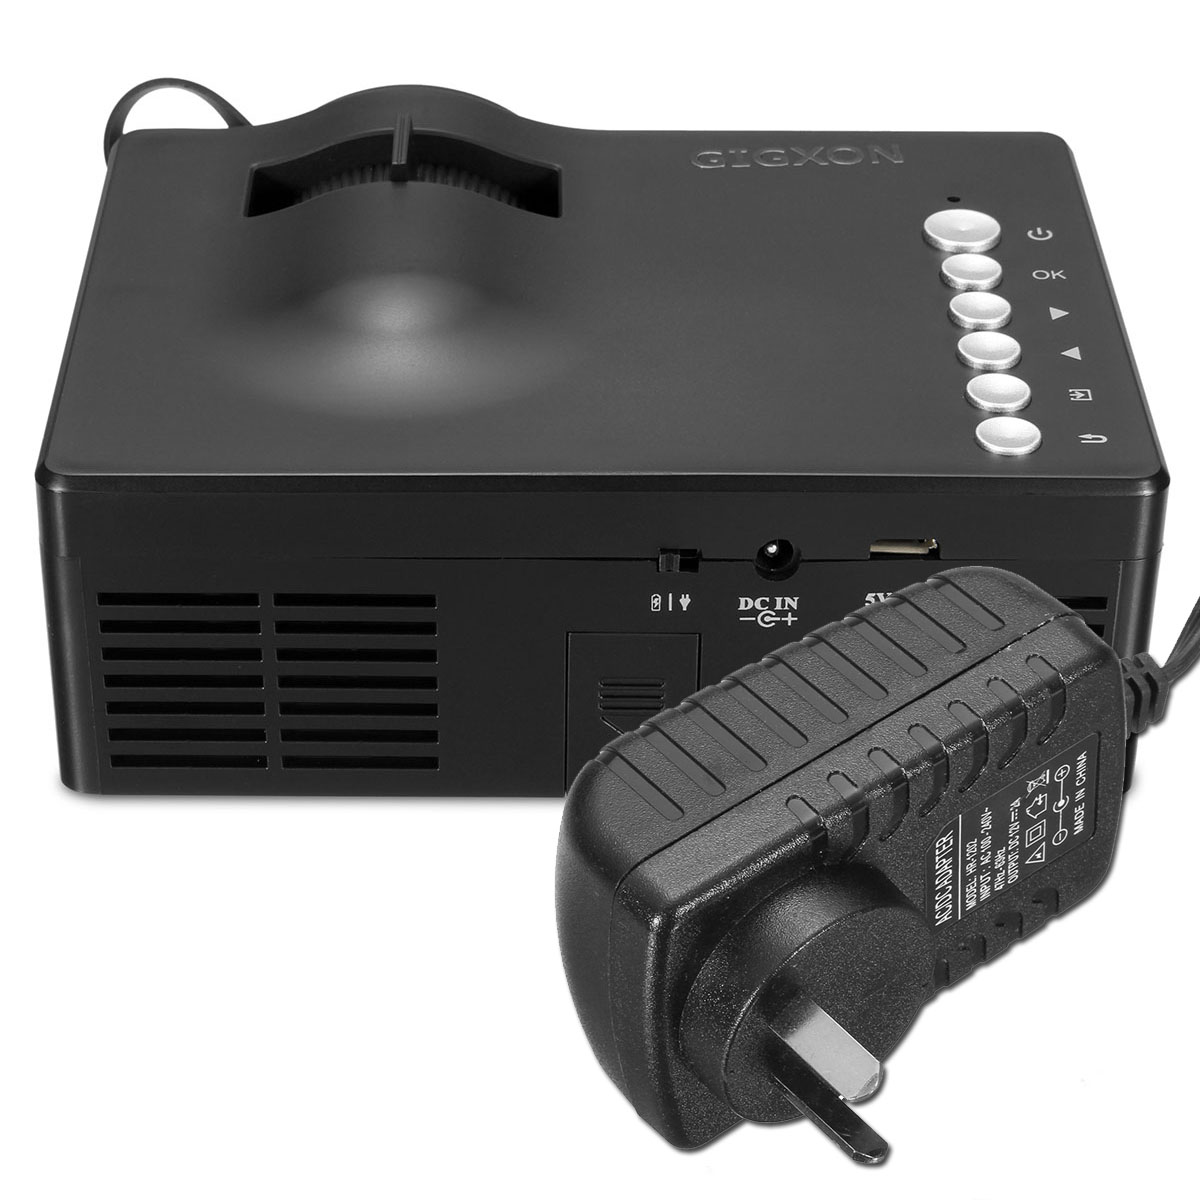 Mini 1080p Full Hd Led Projector Home Theater Cinema 3d: Micro Mini Portable Full HD 1080P Home Theater LED